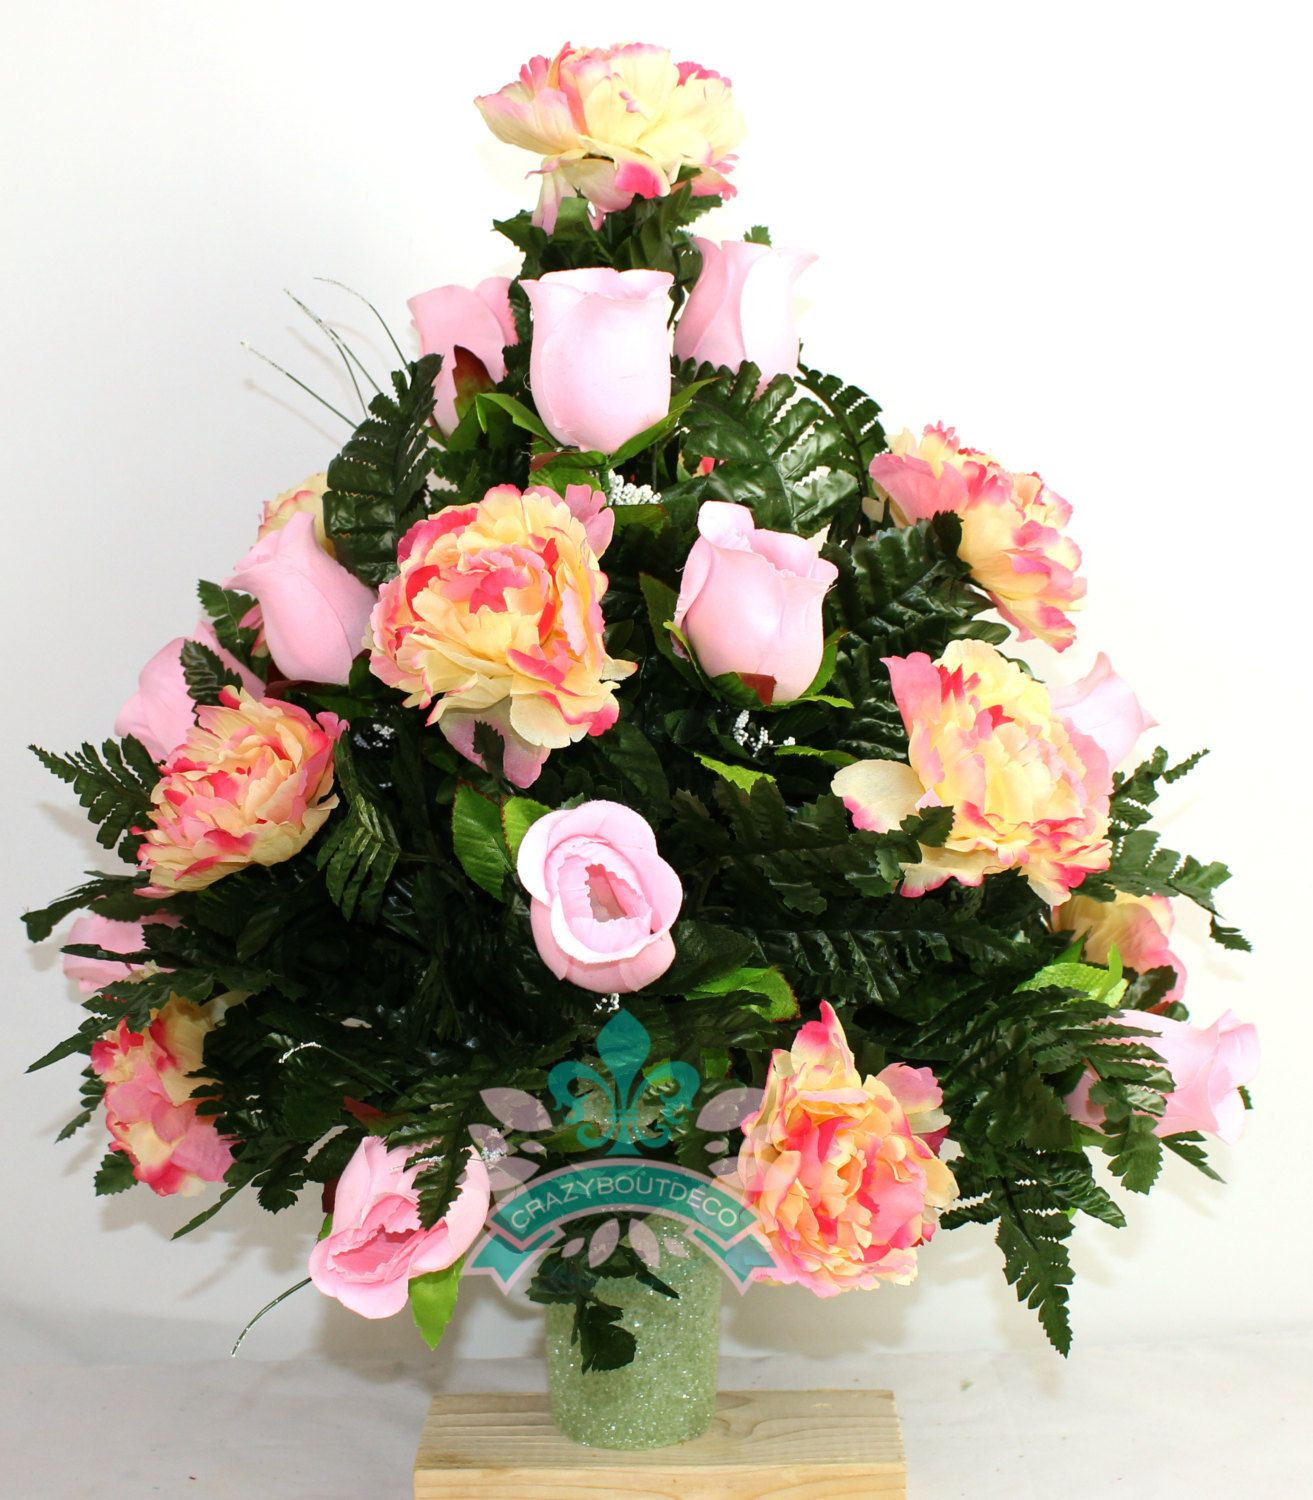 Headstone Vase Flower Arrangements Of Xl Beautiful Spring Cemetery Flower Arrangement for A 3 Inch Vase Inside Xl Beautiful Pink Roses and Peonies Cemetery Flower Arrangement for A 3 Inch Vase by Crazyboutdeco